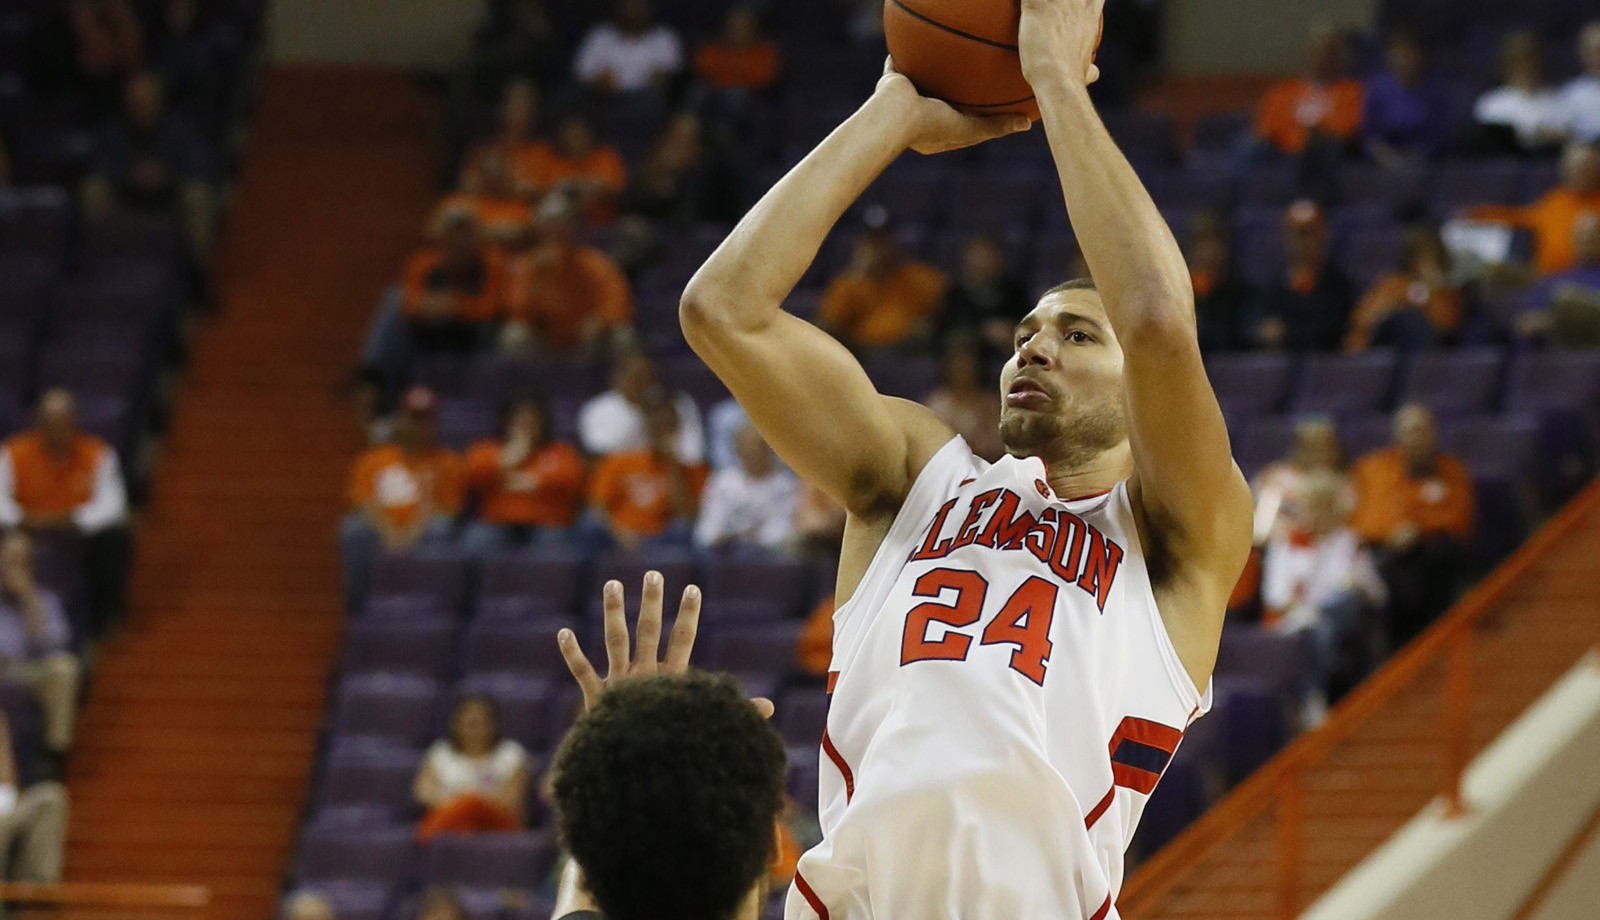 Tigers to Face Furman in Greenville Friday Night